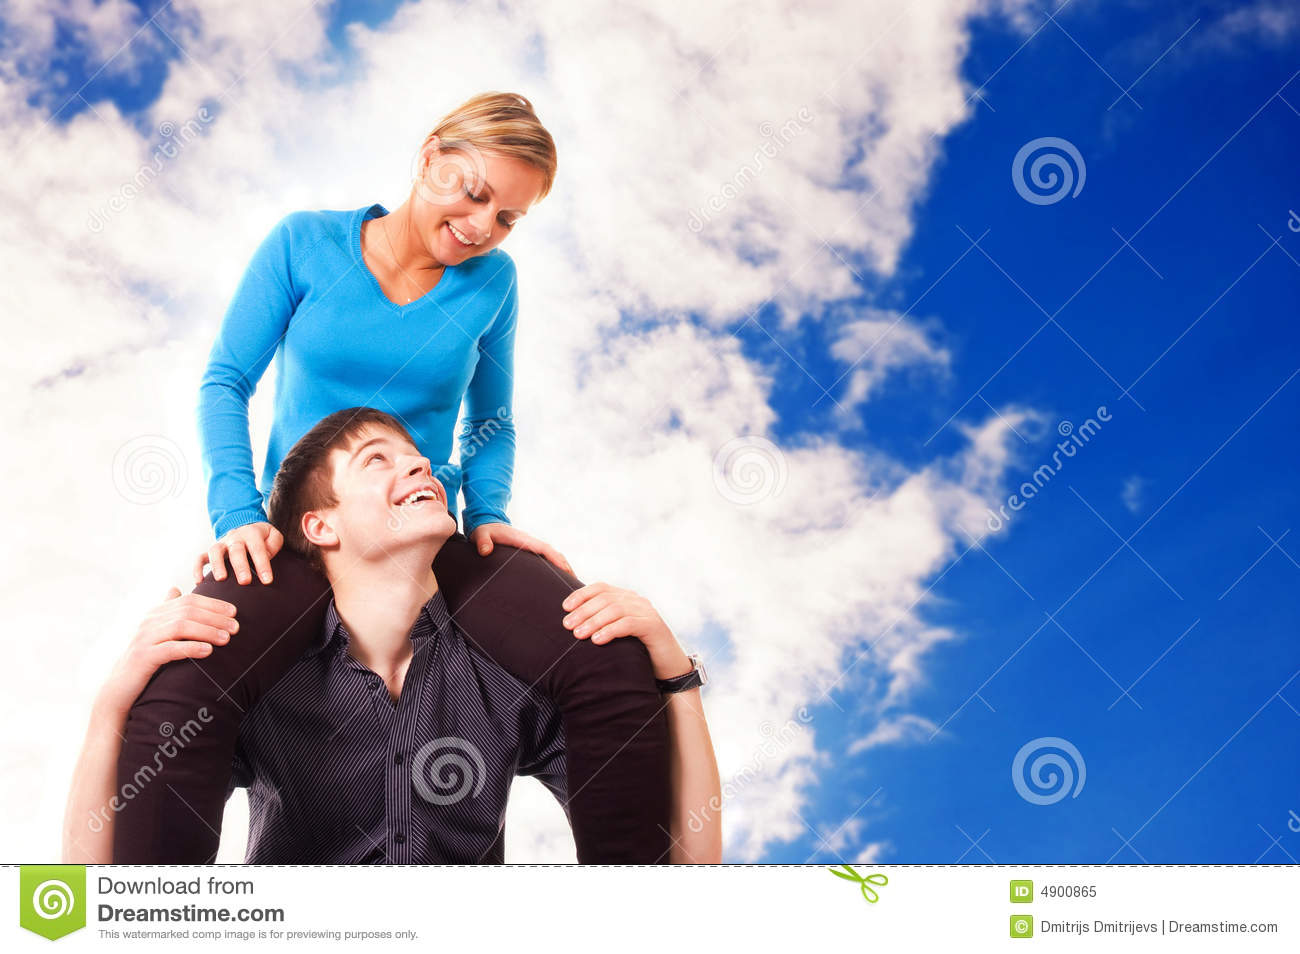 Background blue couple fun having sky young